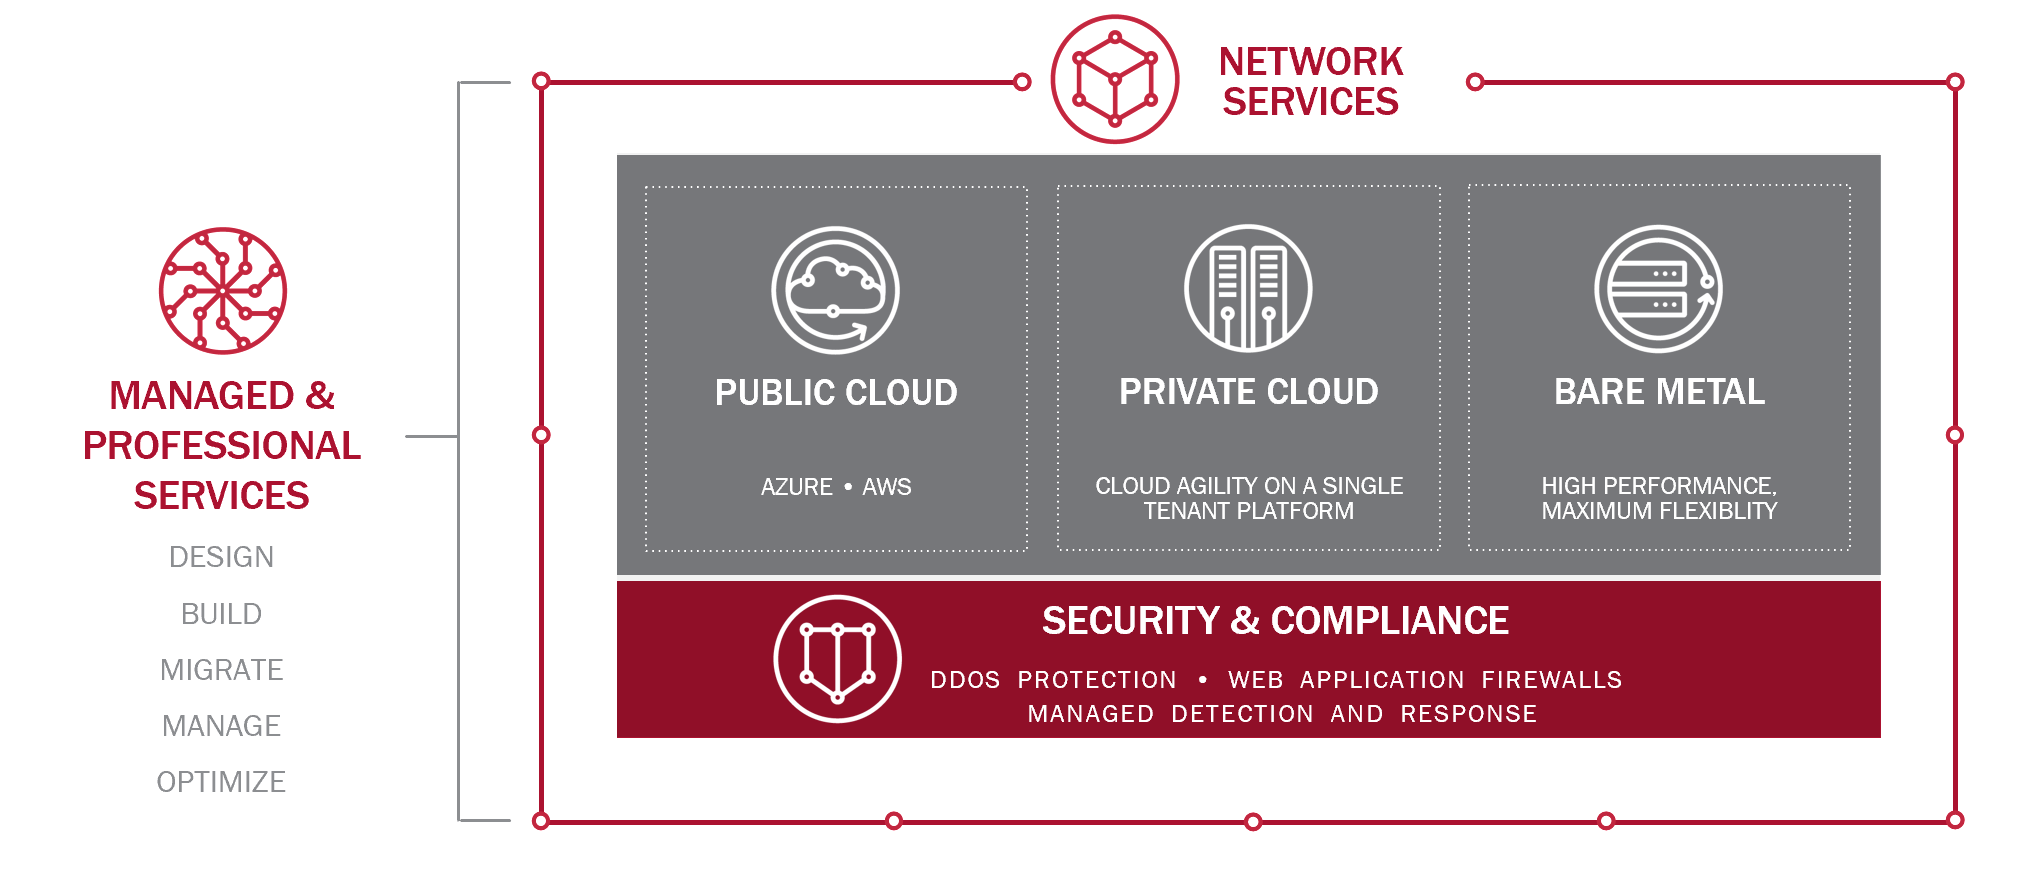 Diagram: Managed and Professional Services let customers take full advantage of Aptum's Connectivity services. Assess, design, build, migrate, manage and optimize the Cloud, Complex Managed Hosting, Colocation solution to serve your data needs, with Security and Compliance at the backbone of all of our offerings.